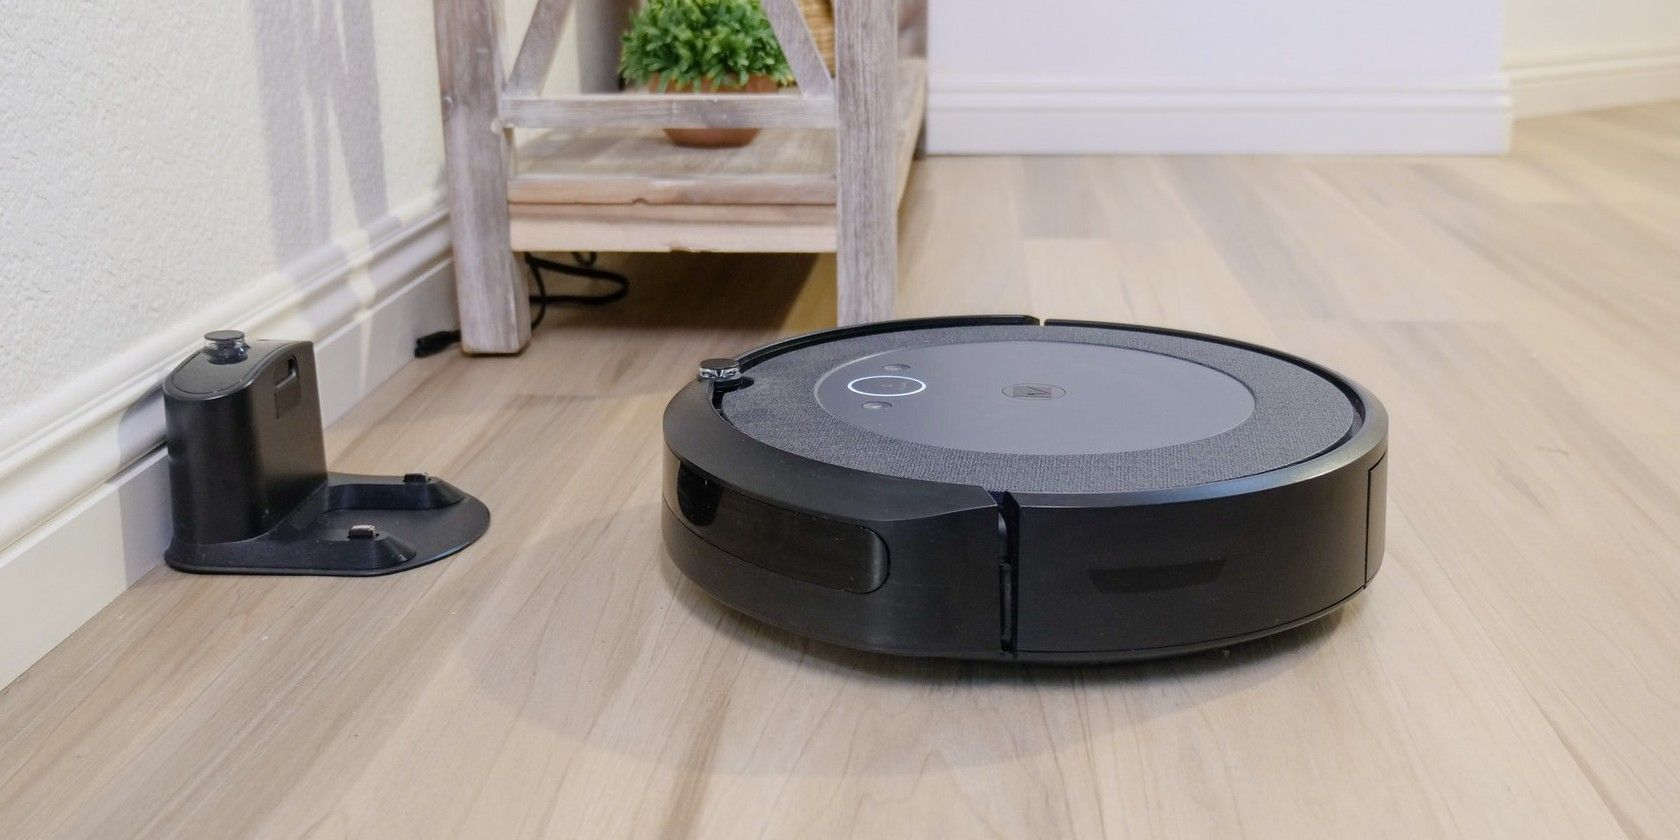 The 7 Best Self-Emptying Robot Vacuums